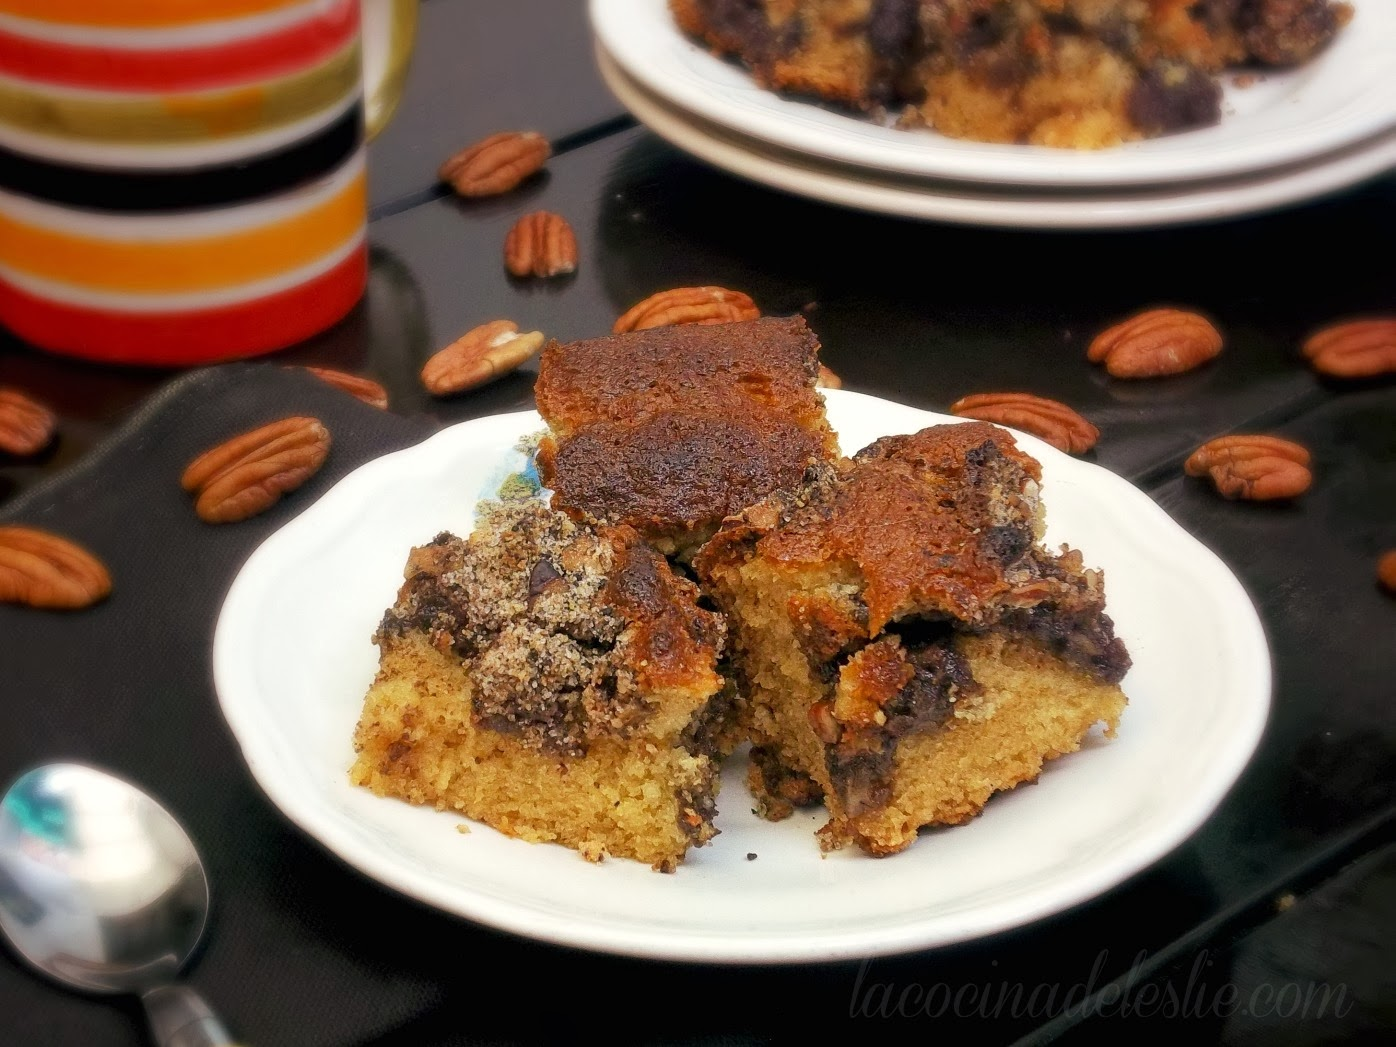 Coffee Cake w/ Mexican Chocolate - lacocinadeleslie.com